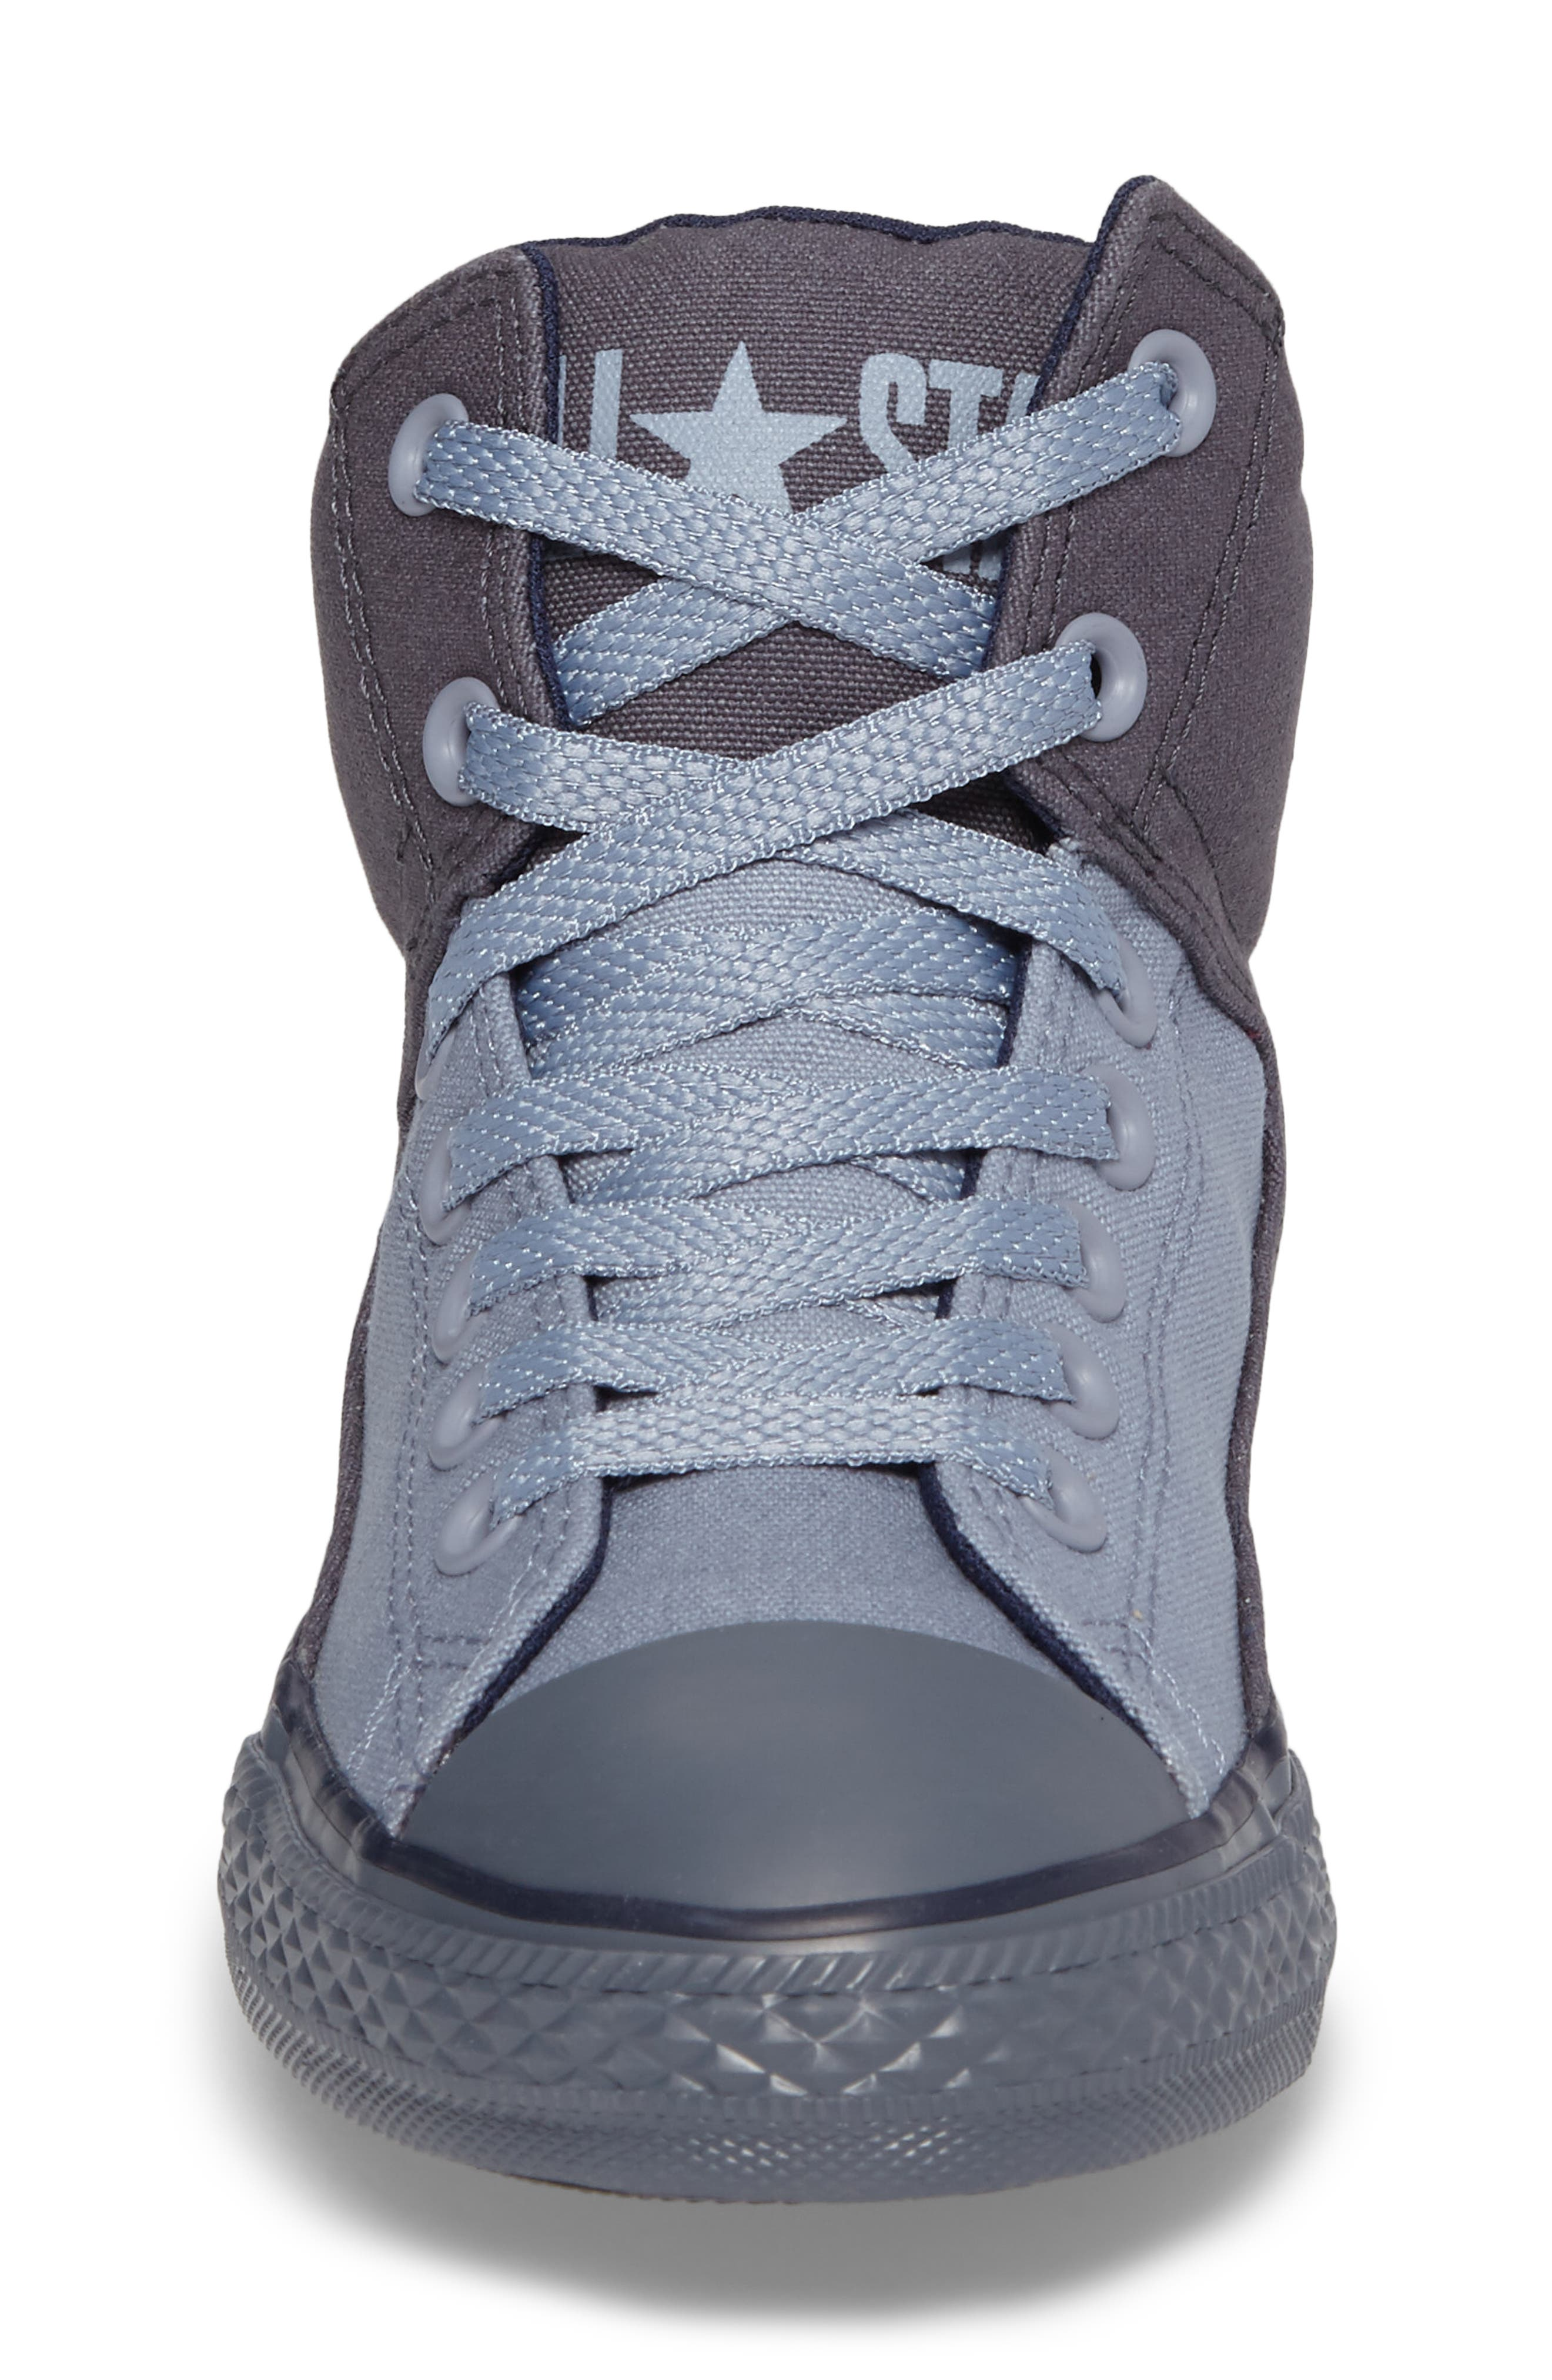 Chuck Taylor<sup>®</sup> All Star<sup>®</sup> High Street High Top Sneaker,                             Alternate thumbnail 4, color,                             400